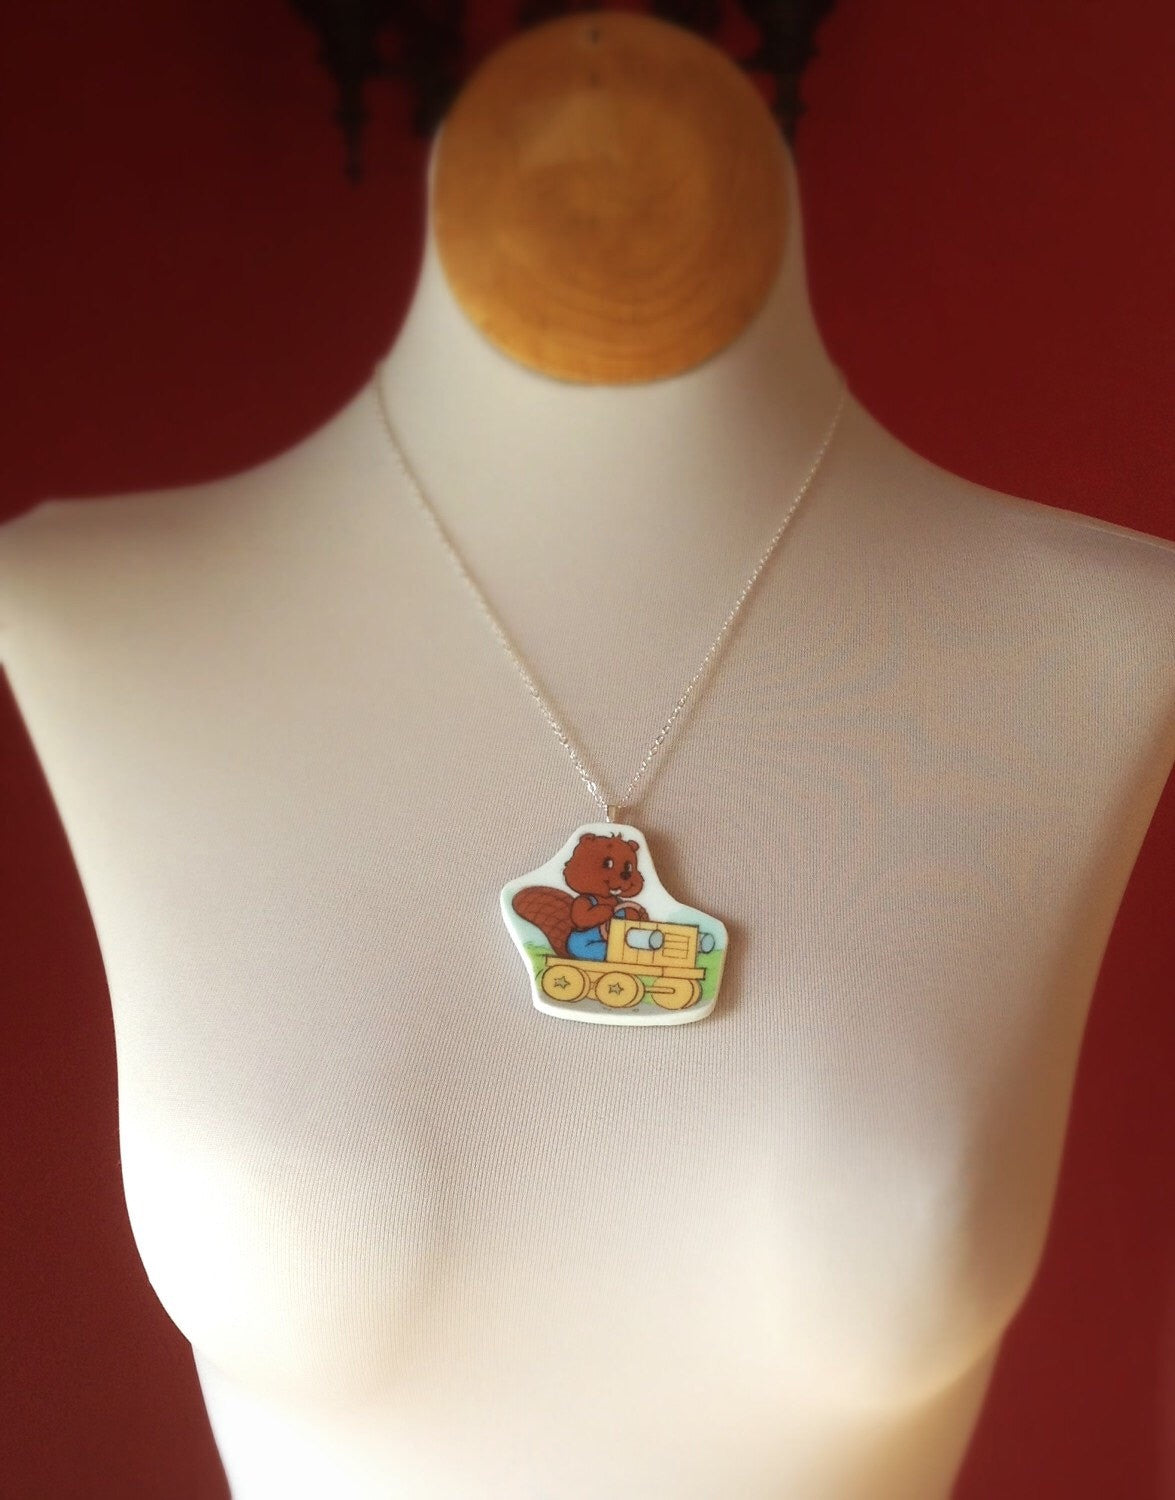 Broken China Jewelry - Necklace 1980s Bingo Get along Gang on Model